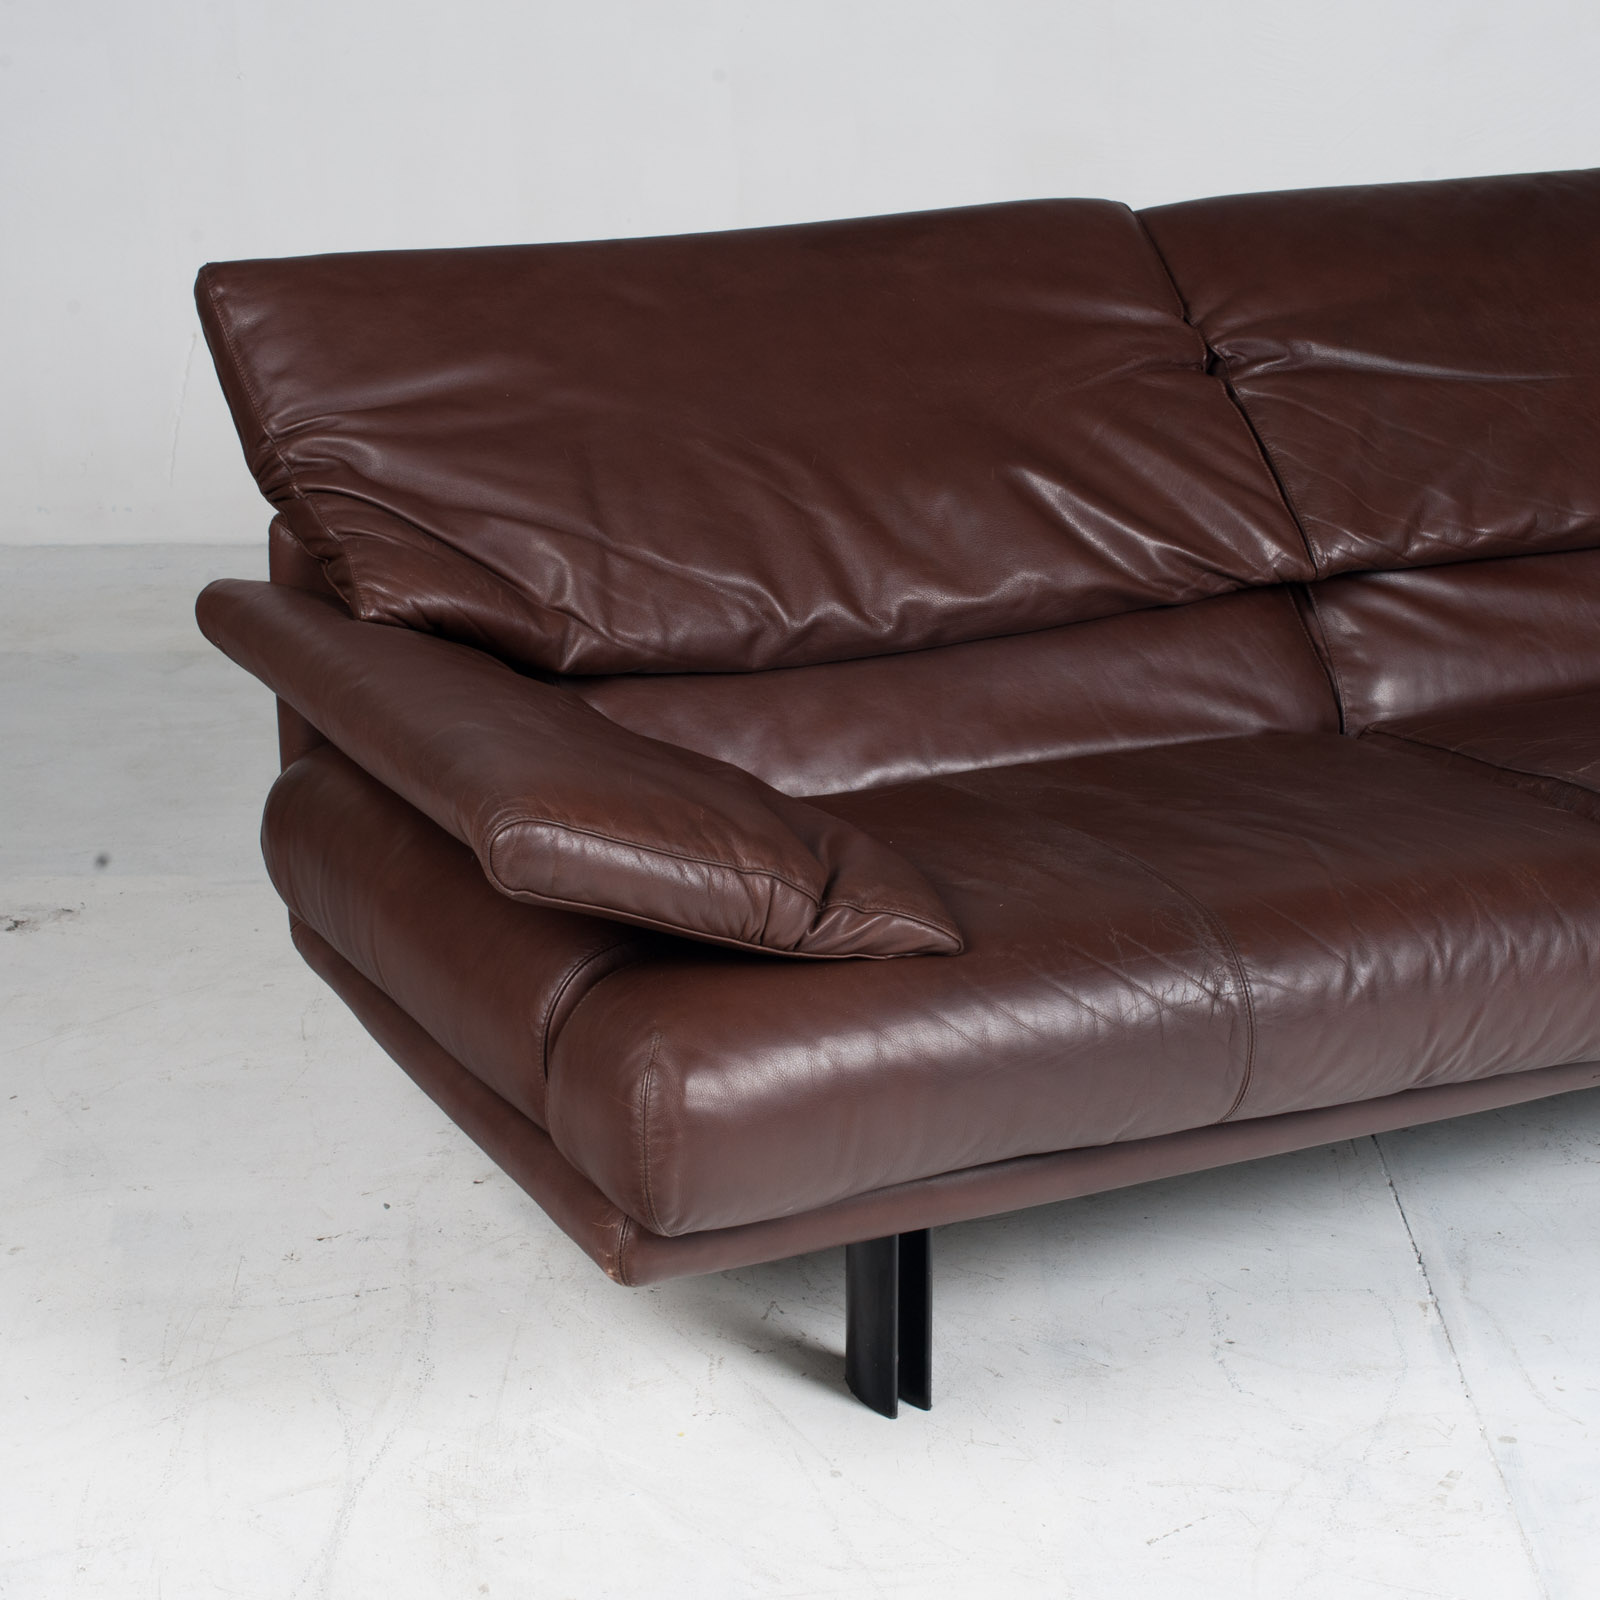 Alanda Sofa By Paolo Piva For B&b Italia In Burgundy Leather 1980s Italy 05